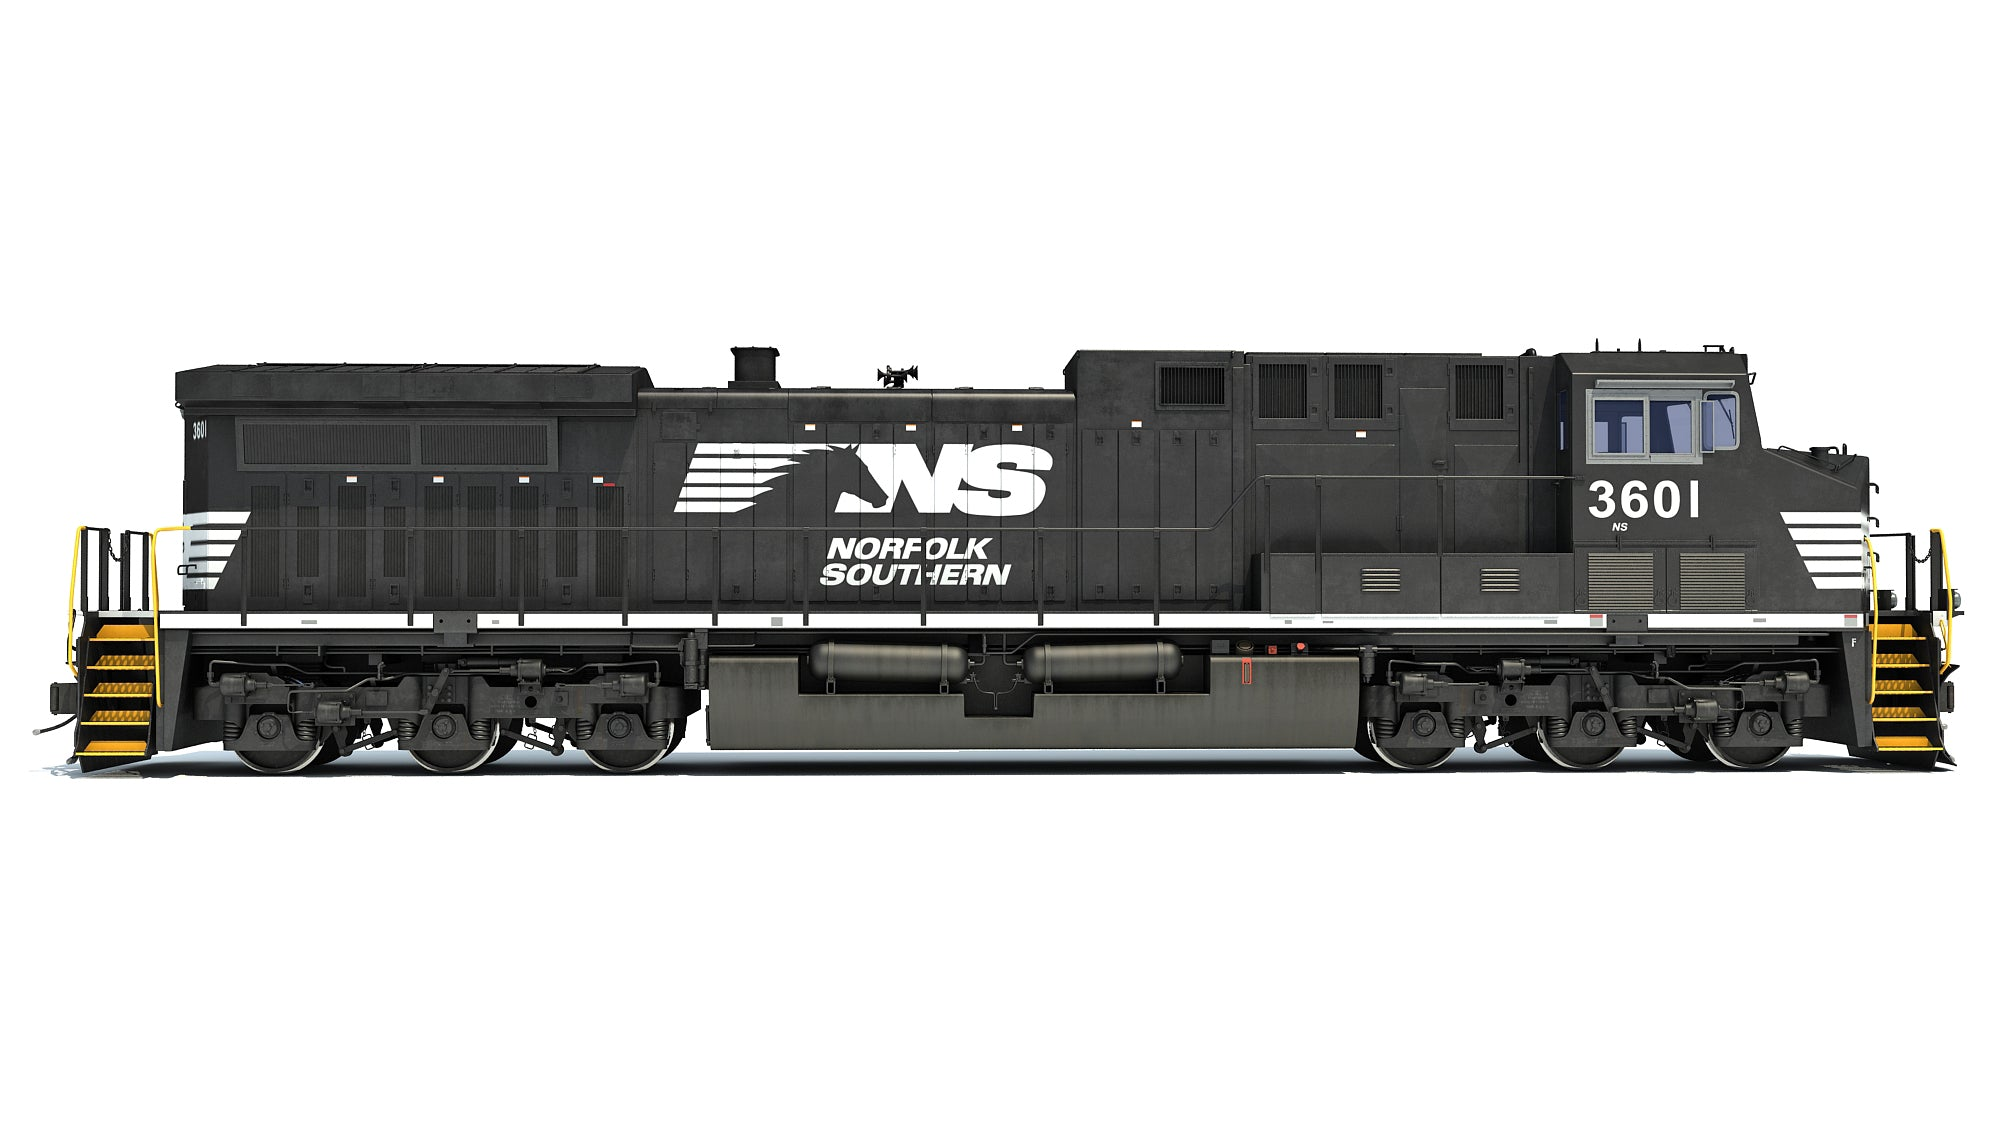 Norfolk Southern Locomotive